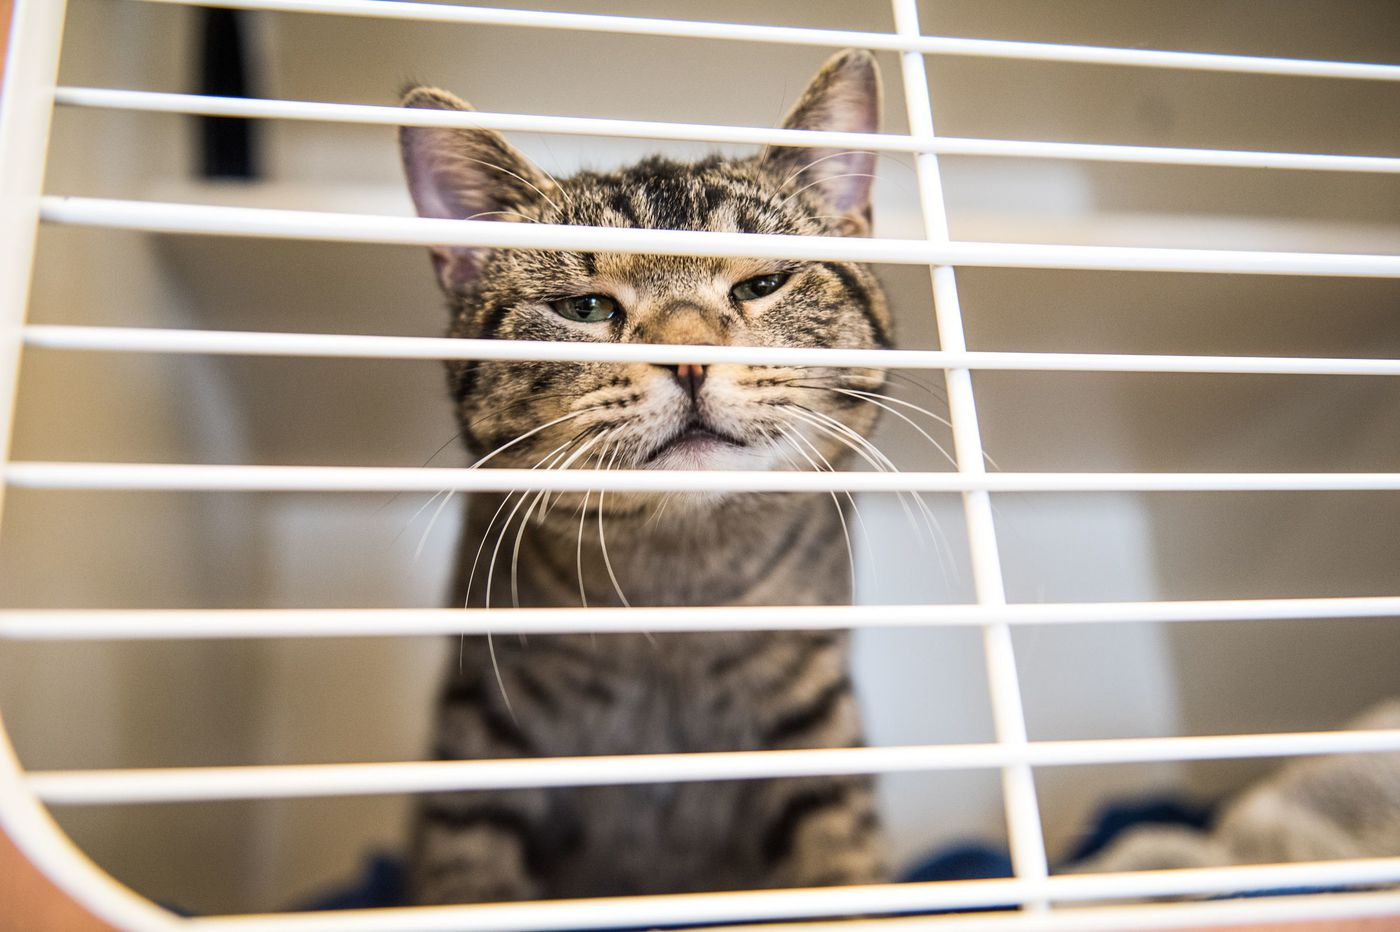 Adopting a cat? As kitten season nears, here's what to consider.